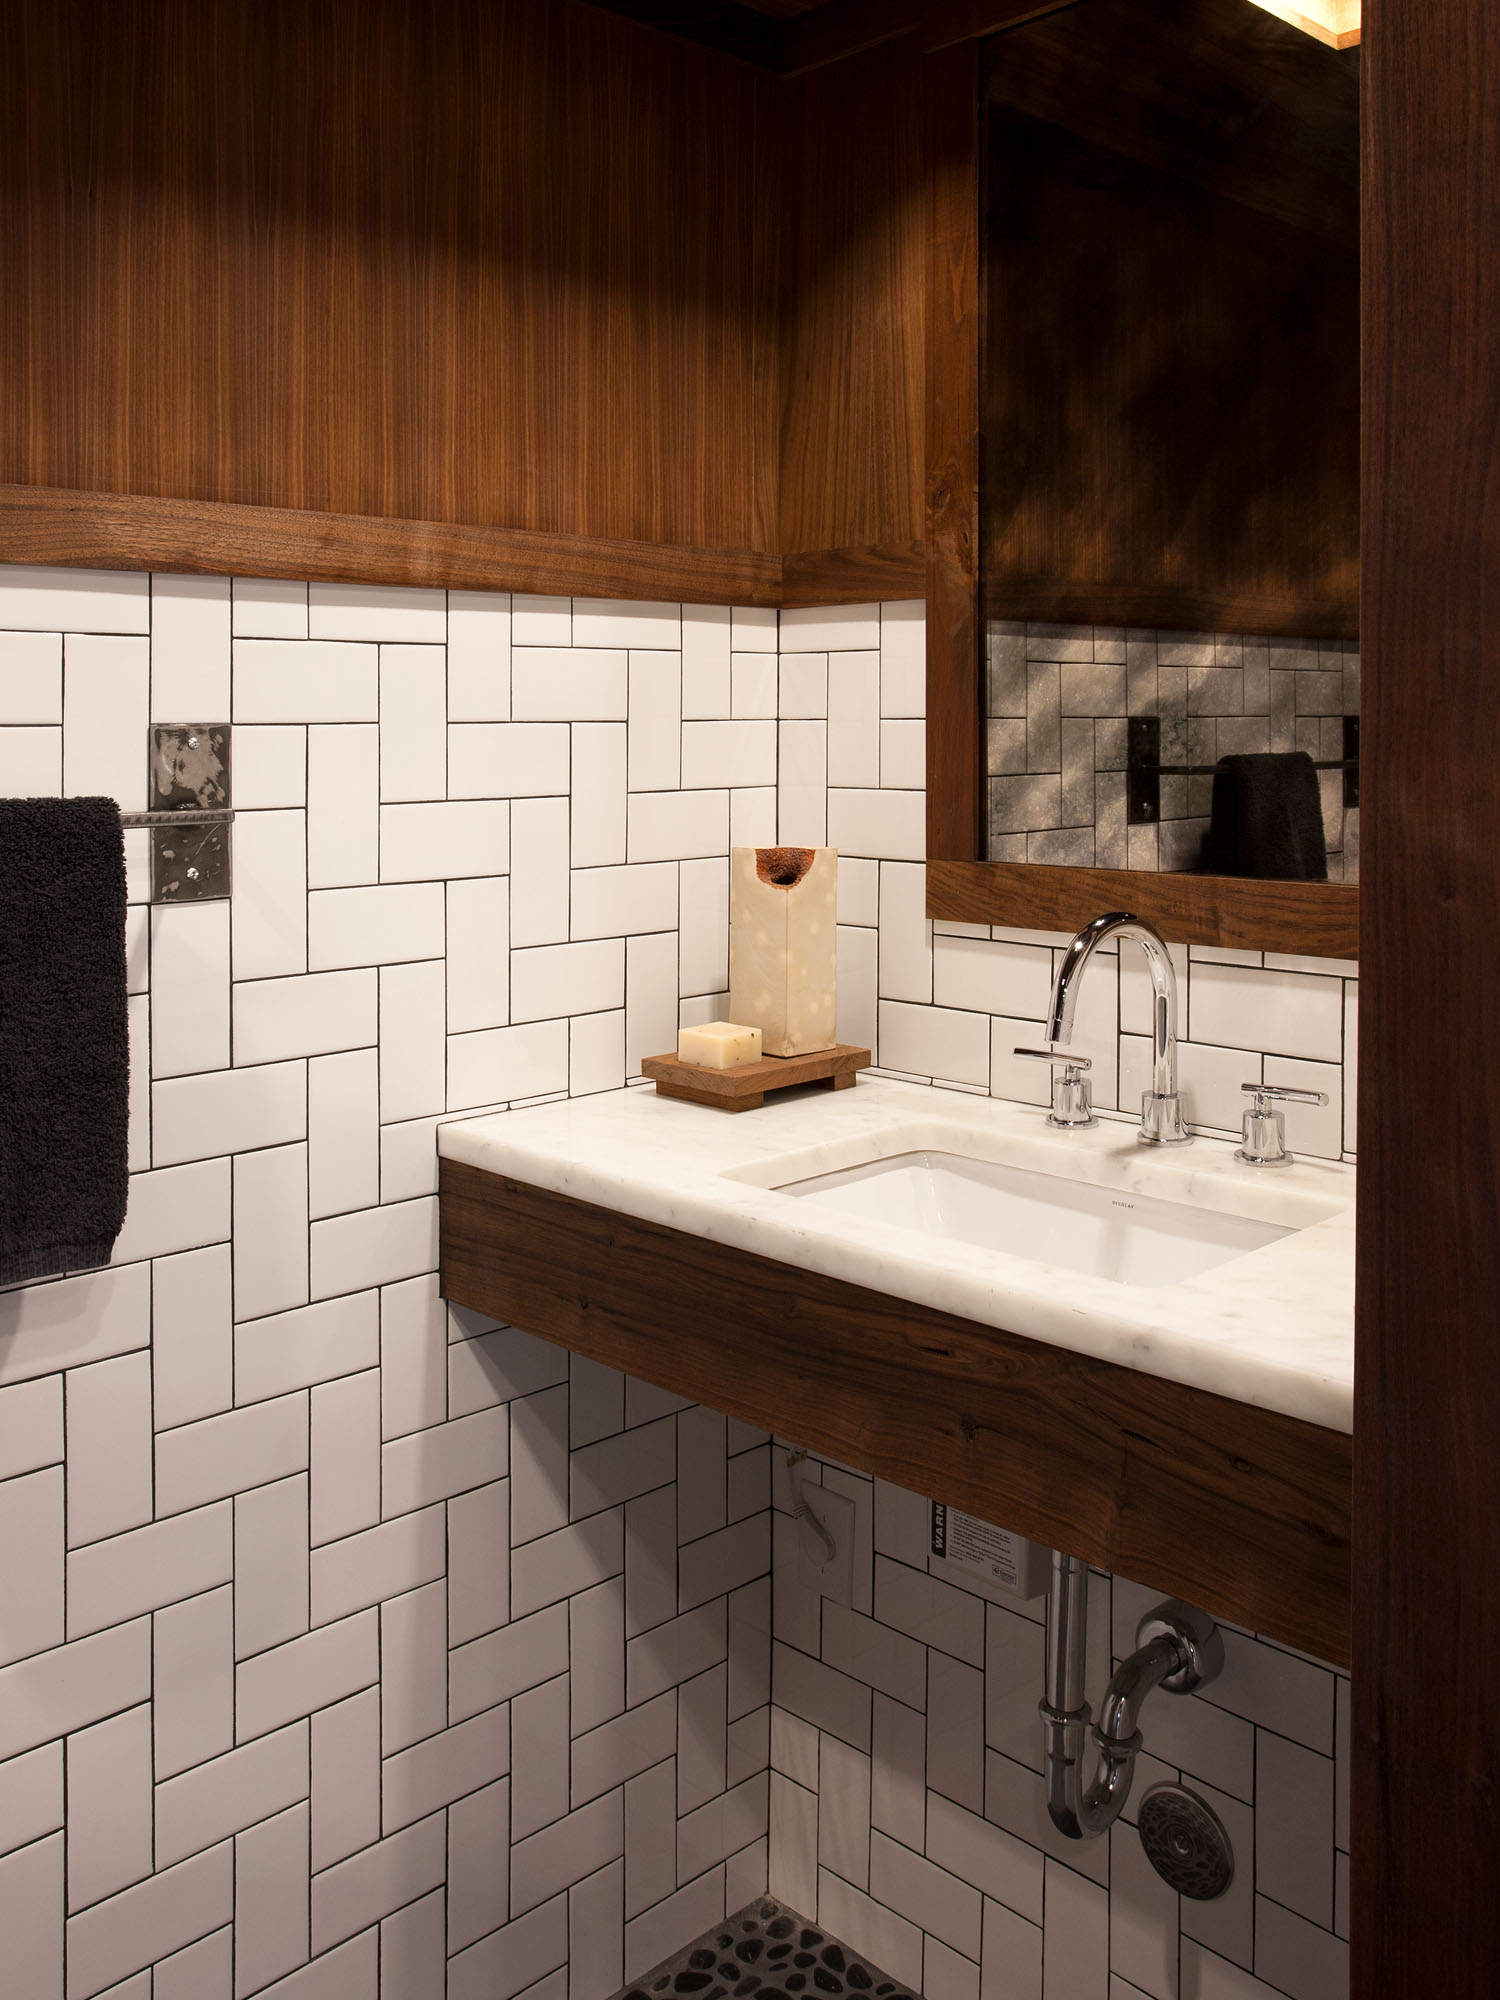 McCray & Co. - Uchi Office - Restroom Detail